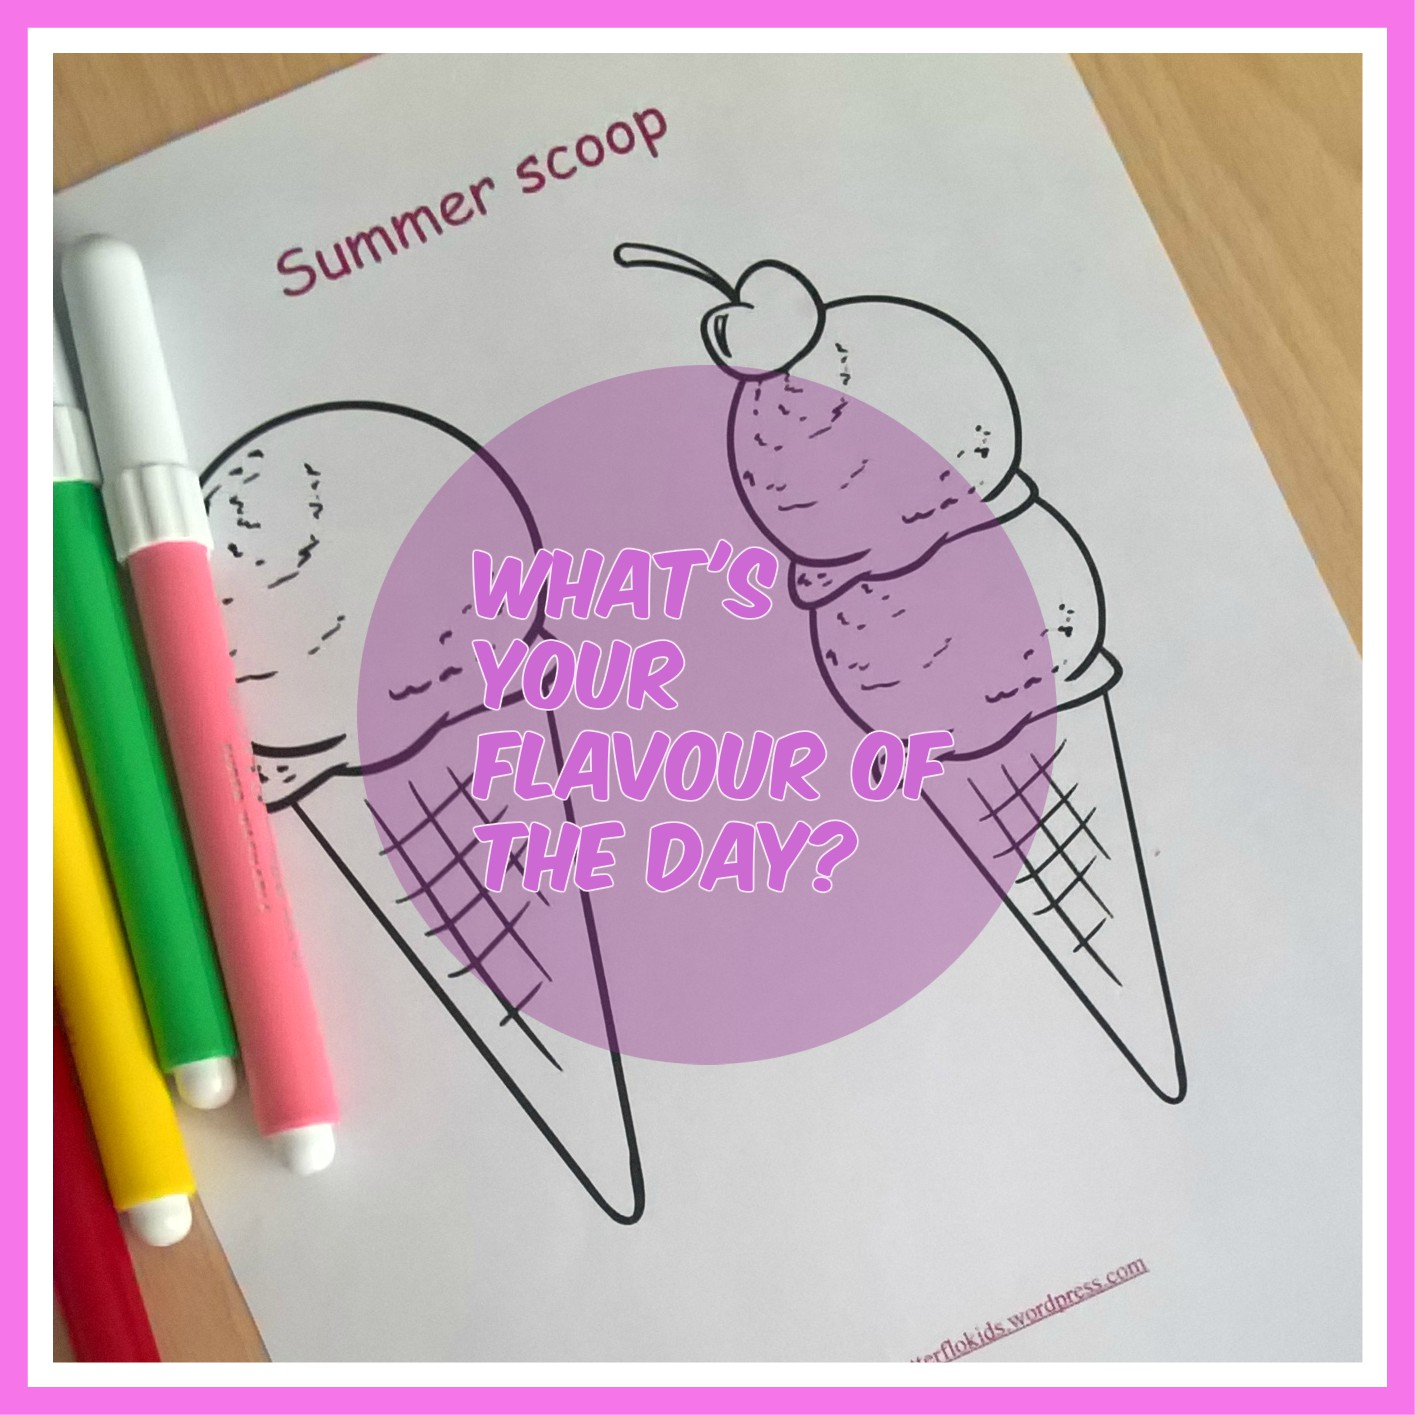 ICE CREAM FLAVOUR OF THE DAY